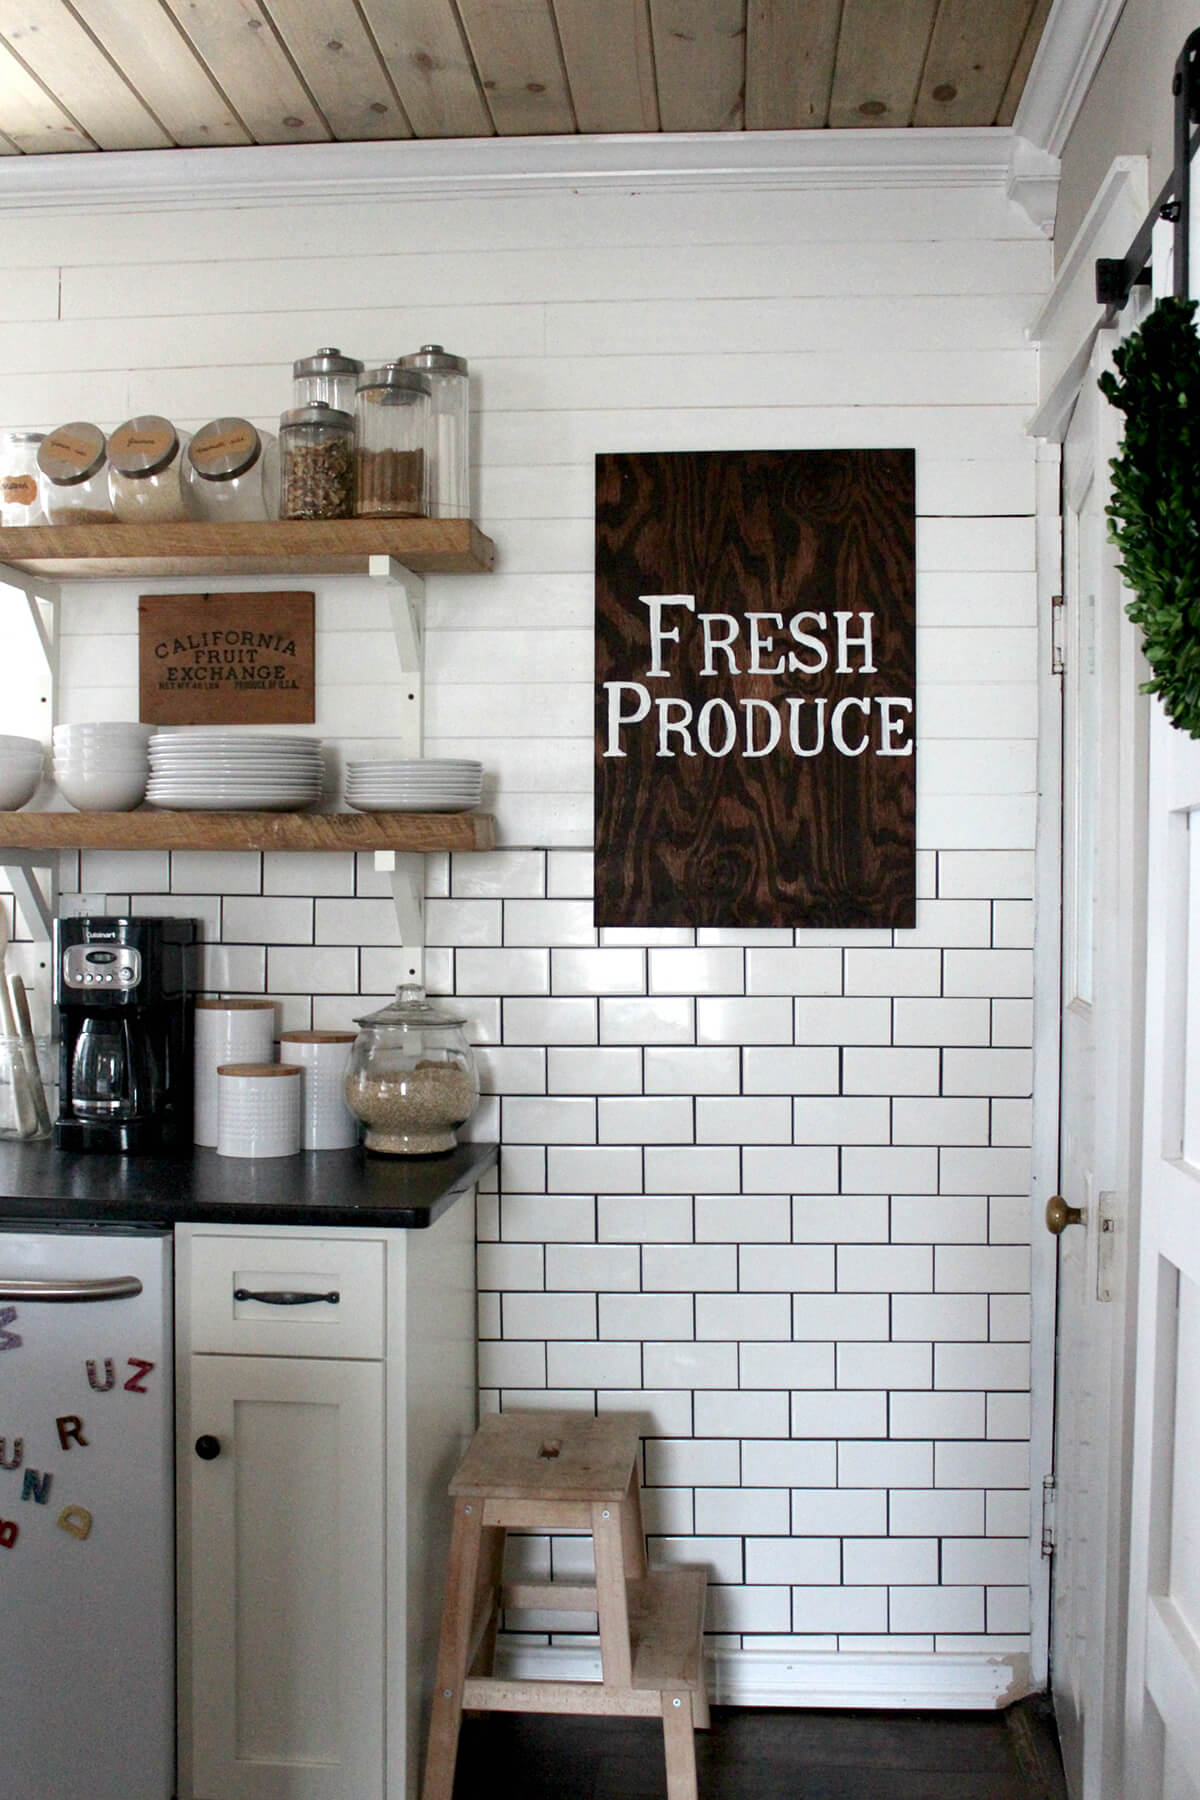 Hand Lettered Fresh Produce Sign